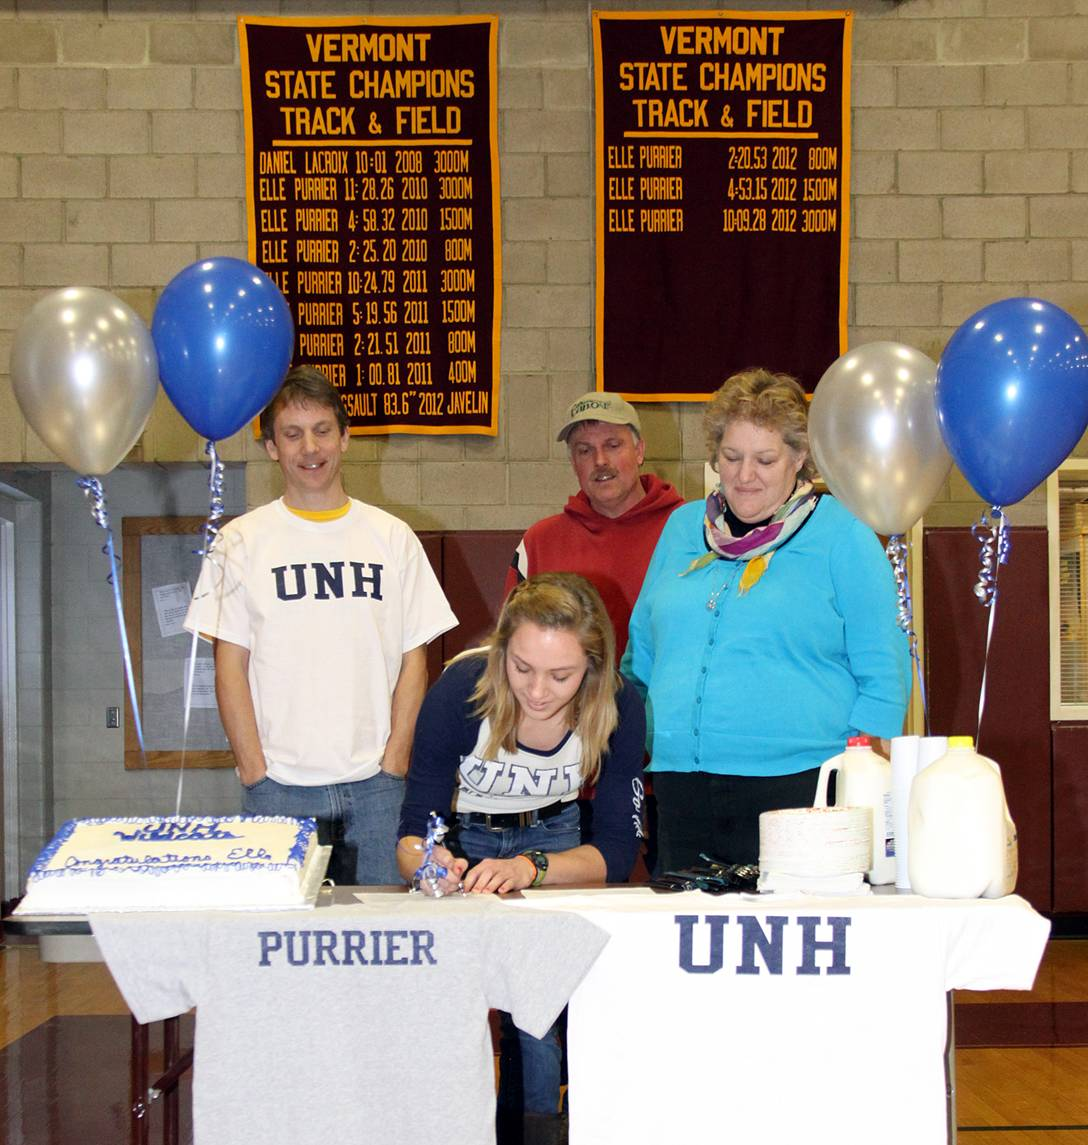 Elle Purrier St. Pierre signs her National Letter of Intent with New Hampshire in this February 2013 file photo. Purrier's coach, Andrew Hathaway (left) and her parents, Charles and Annie Purrier, look on during the signing in the Richford High School gym.